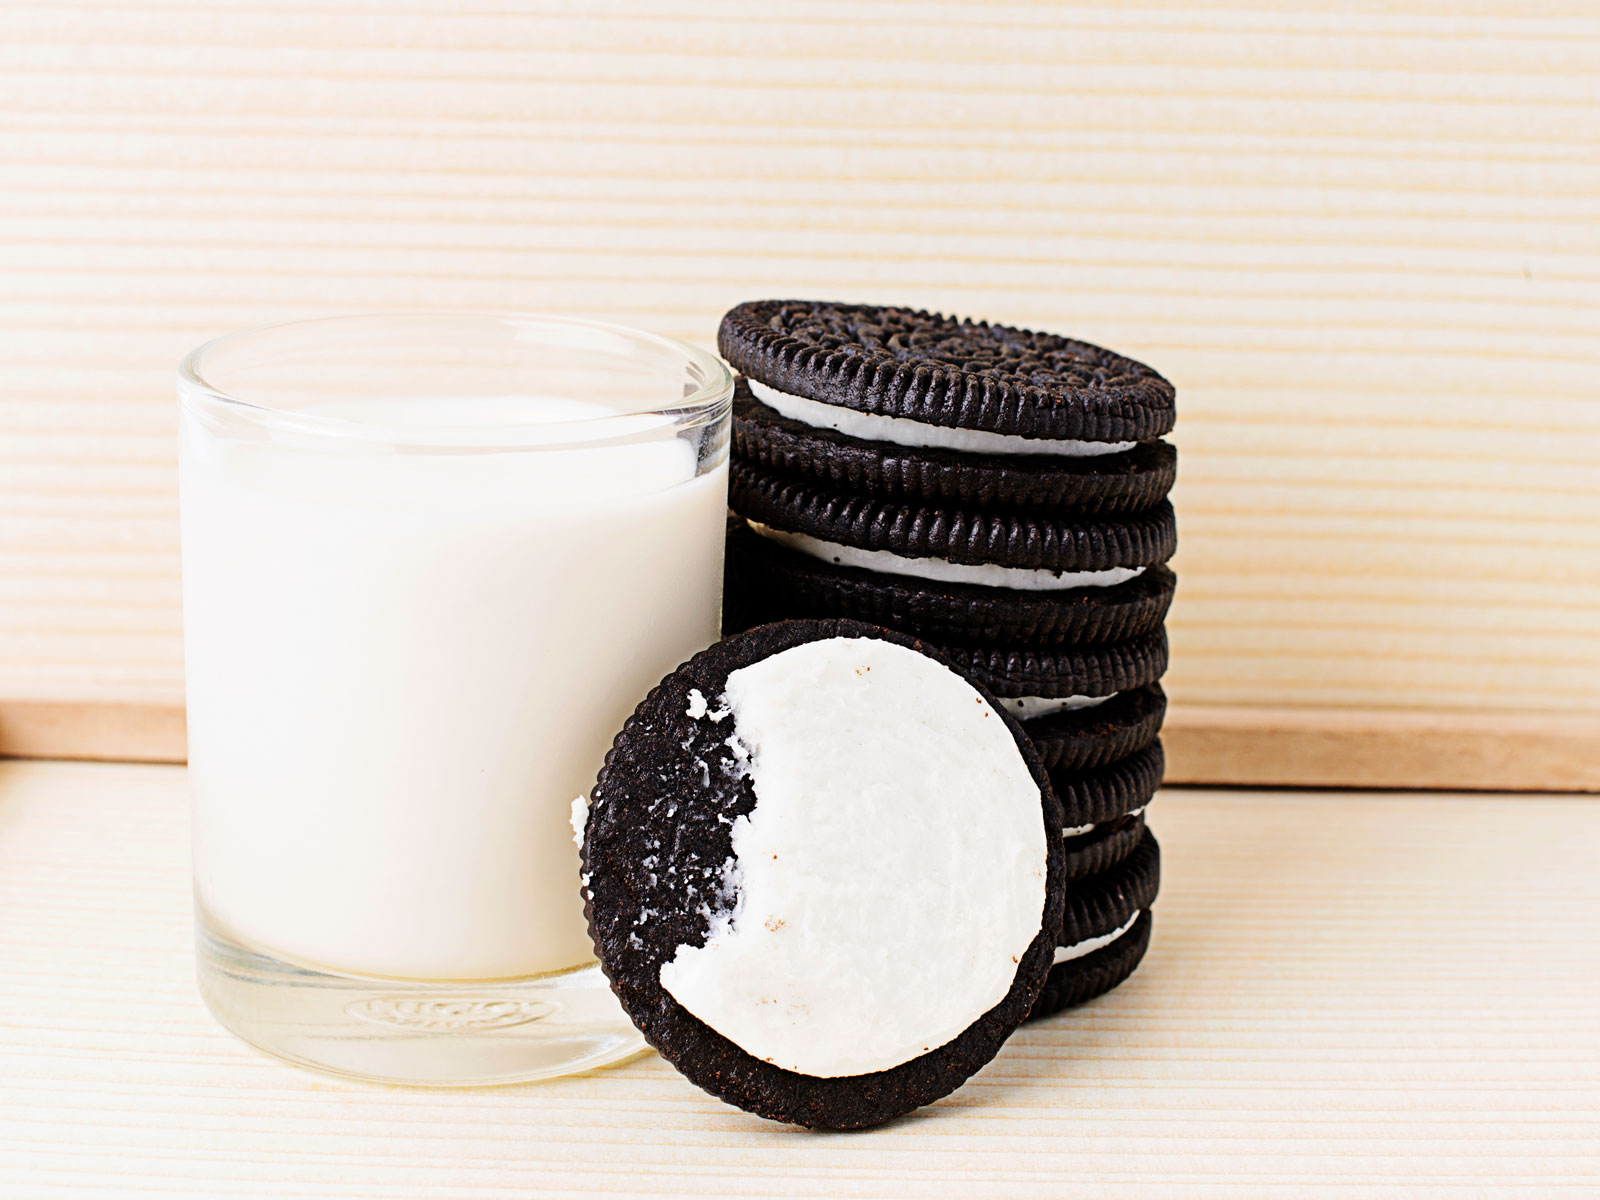 Oreo Confirms 'Most Stuf' Cookie Coming Next Year